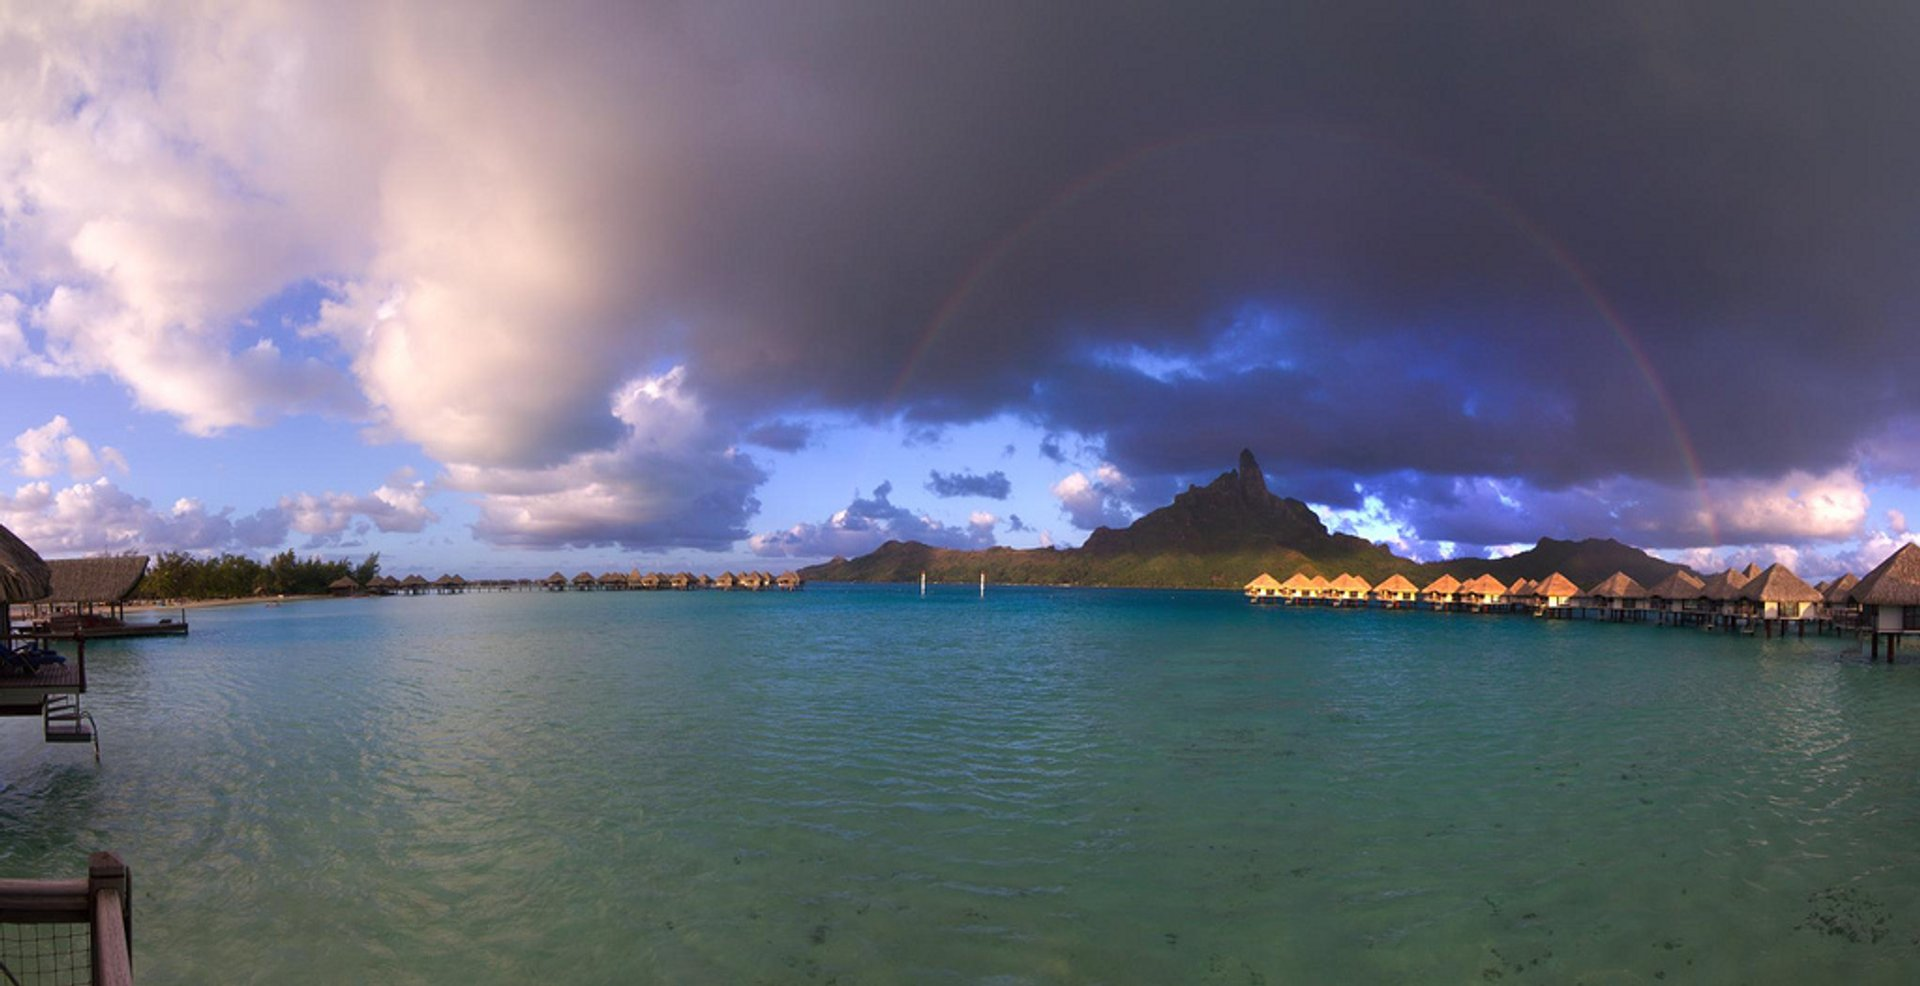 Summer: Wet Season in Bora Bora 2019 - Best Time